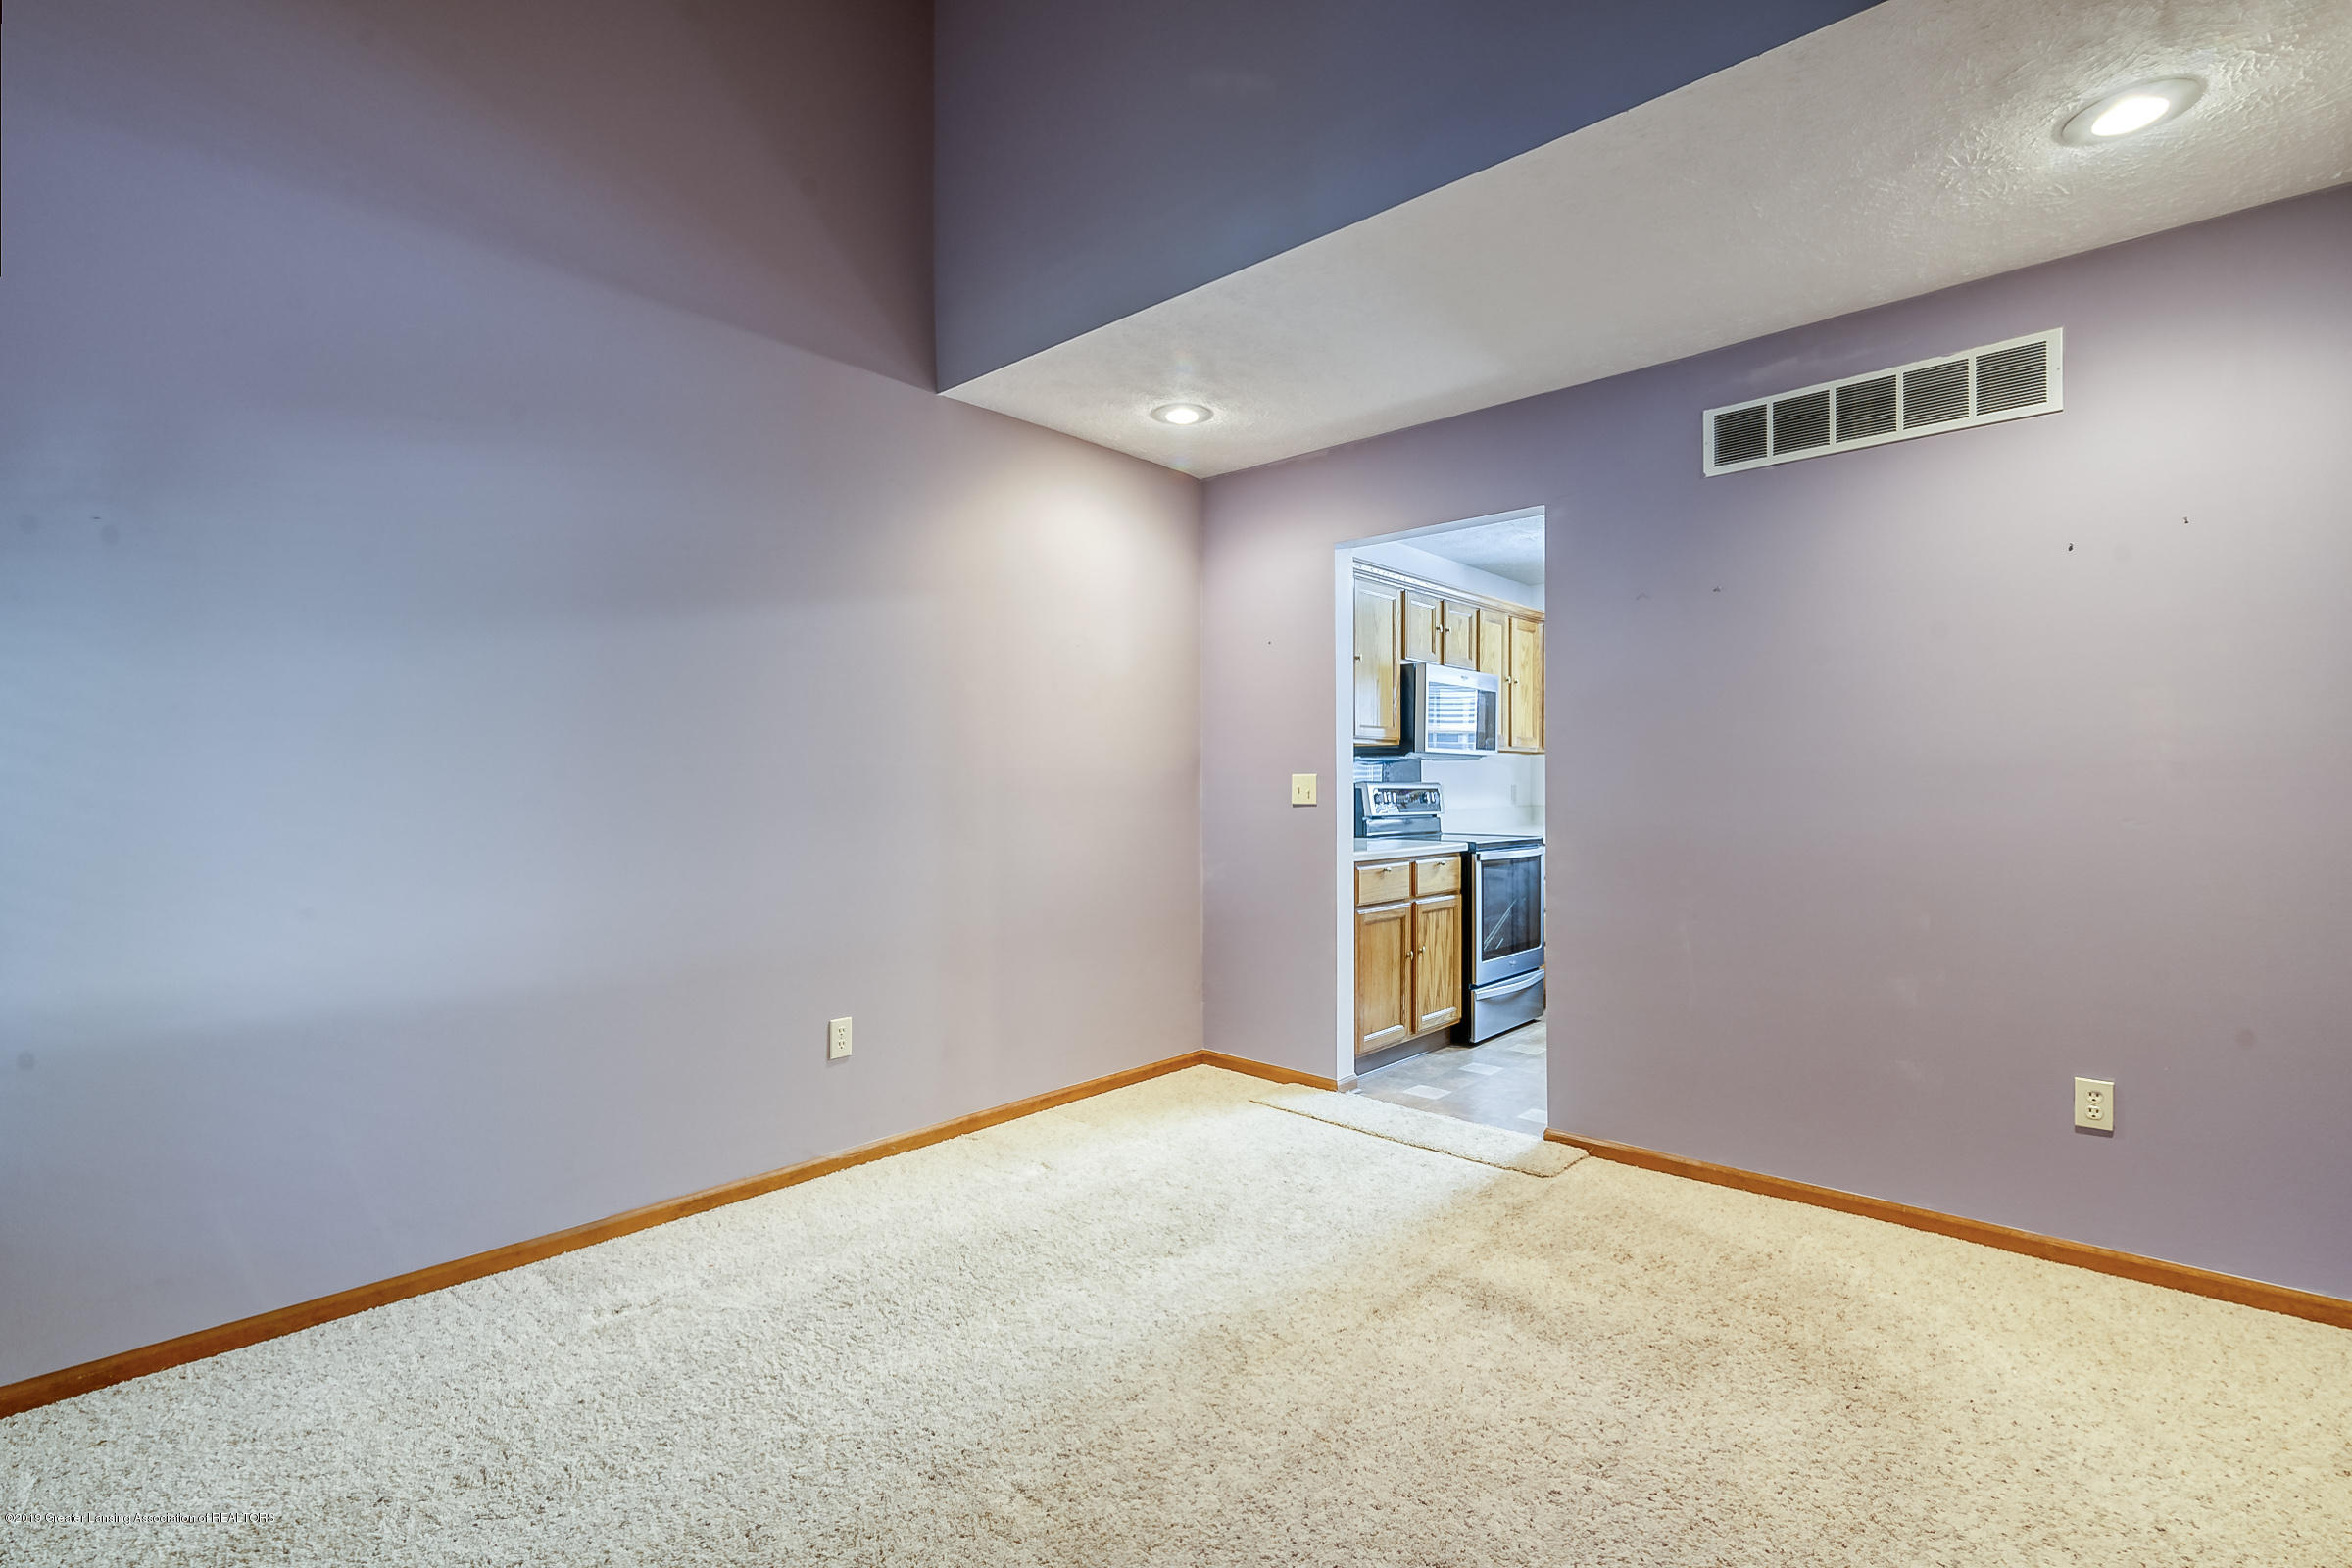 2343 Chisholm Ct - DINING ROOM - 14